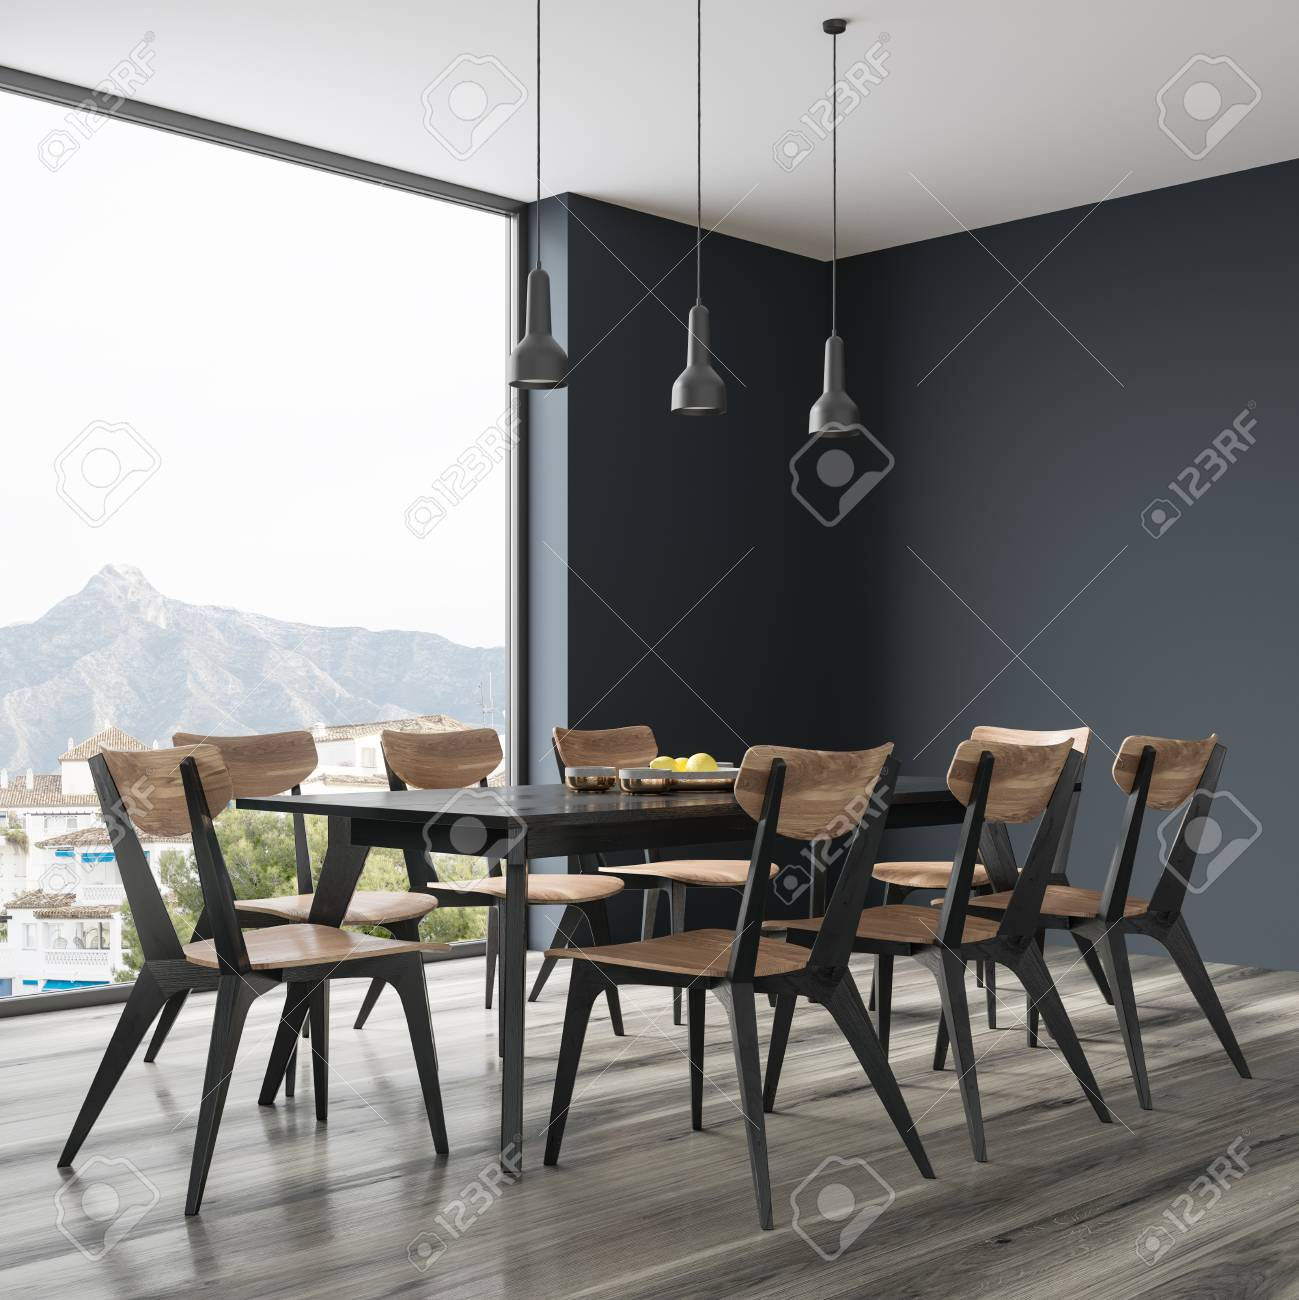 Long Black Dining Room Table With Black And Wooden Chairs Standing Stock Photo Picture And Royalty Free Image Image 95657328